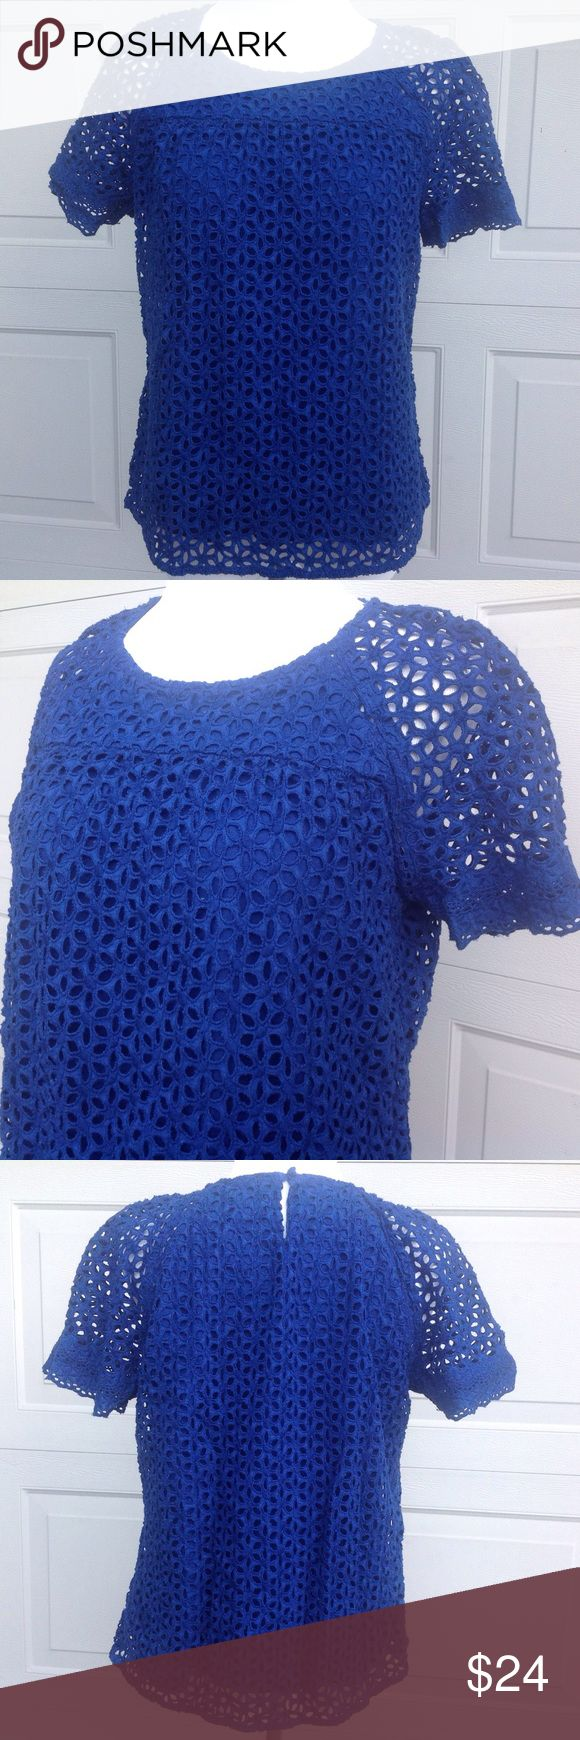 "J. Crew Royal Blue Short Sleeve Top - Size 8 Royal blue, cutout pattern, lined body, see through sleeves, button closure at back. Measurements are approximate: Chest 19"" Length 22"" J. Crew Tops"